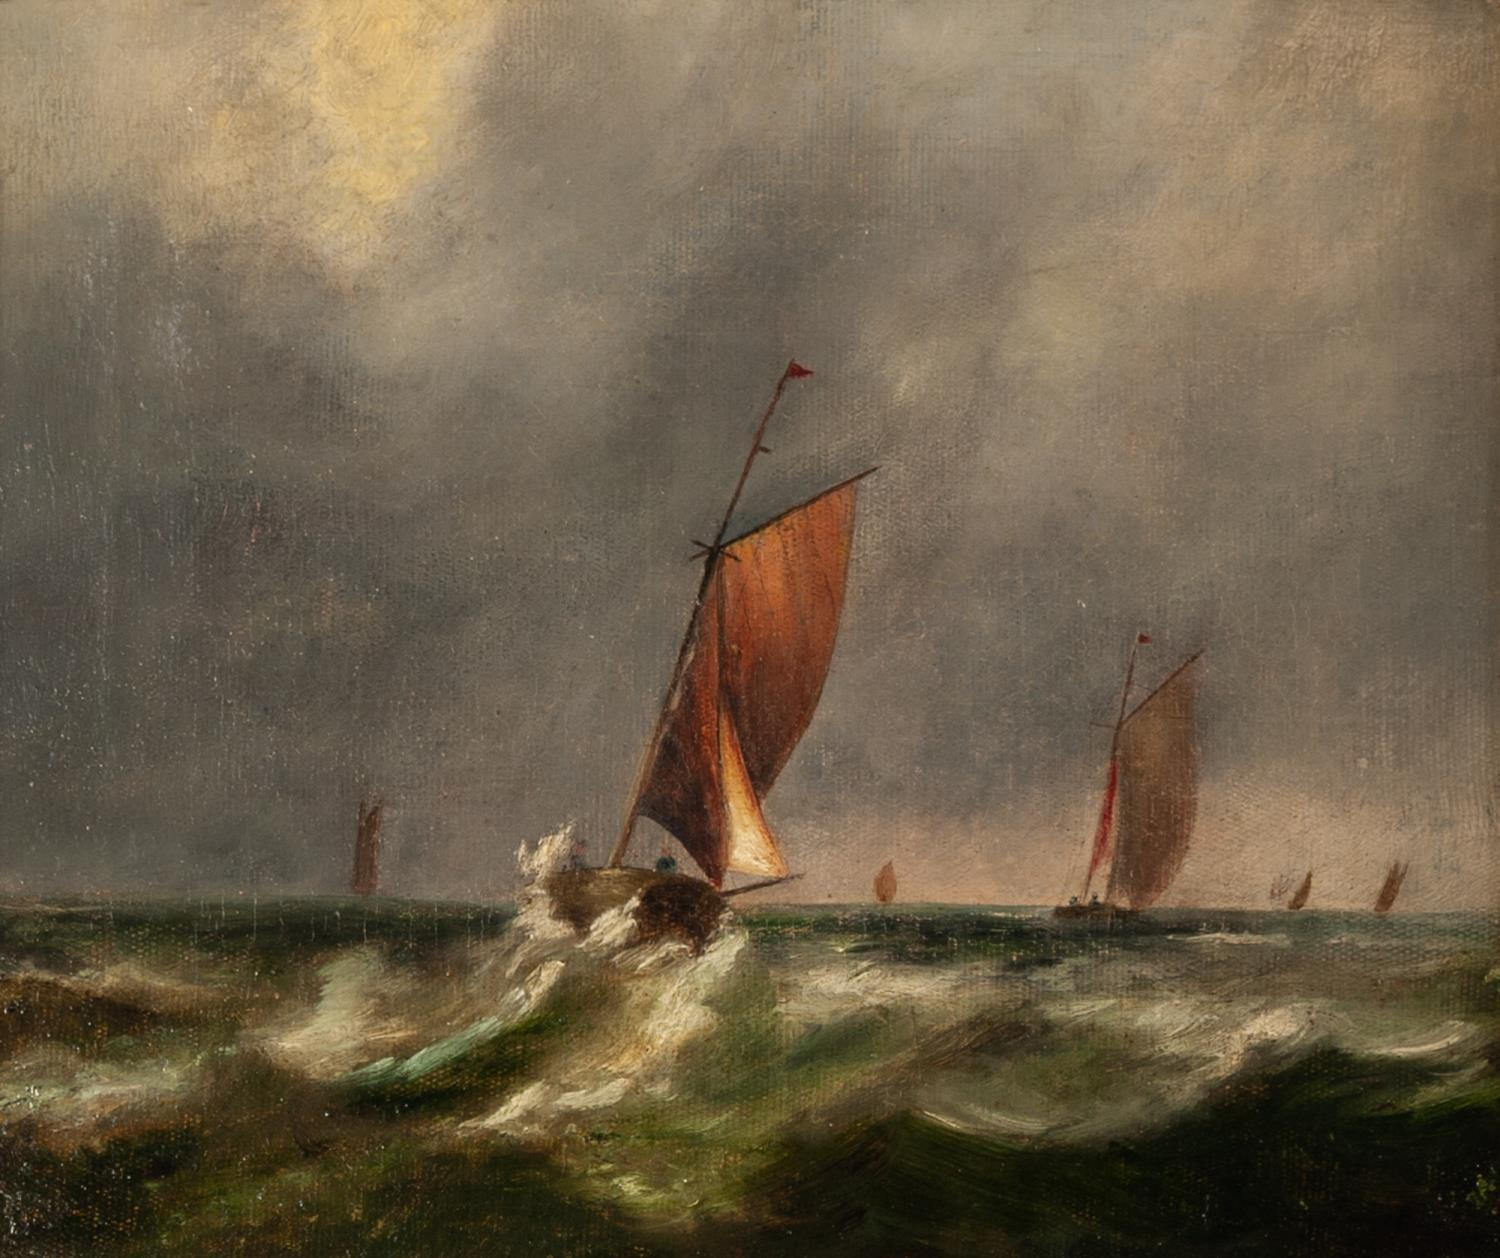 UNATTRIBUTED (NINETEENTH CENTURY ENGLISH SCHOOL) OIL PAINTING ON CANVAS Small sailing vessels in